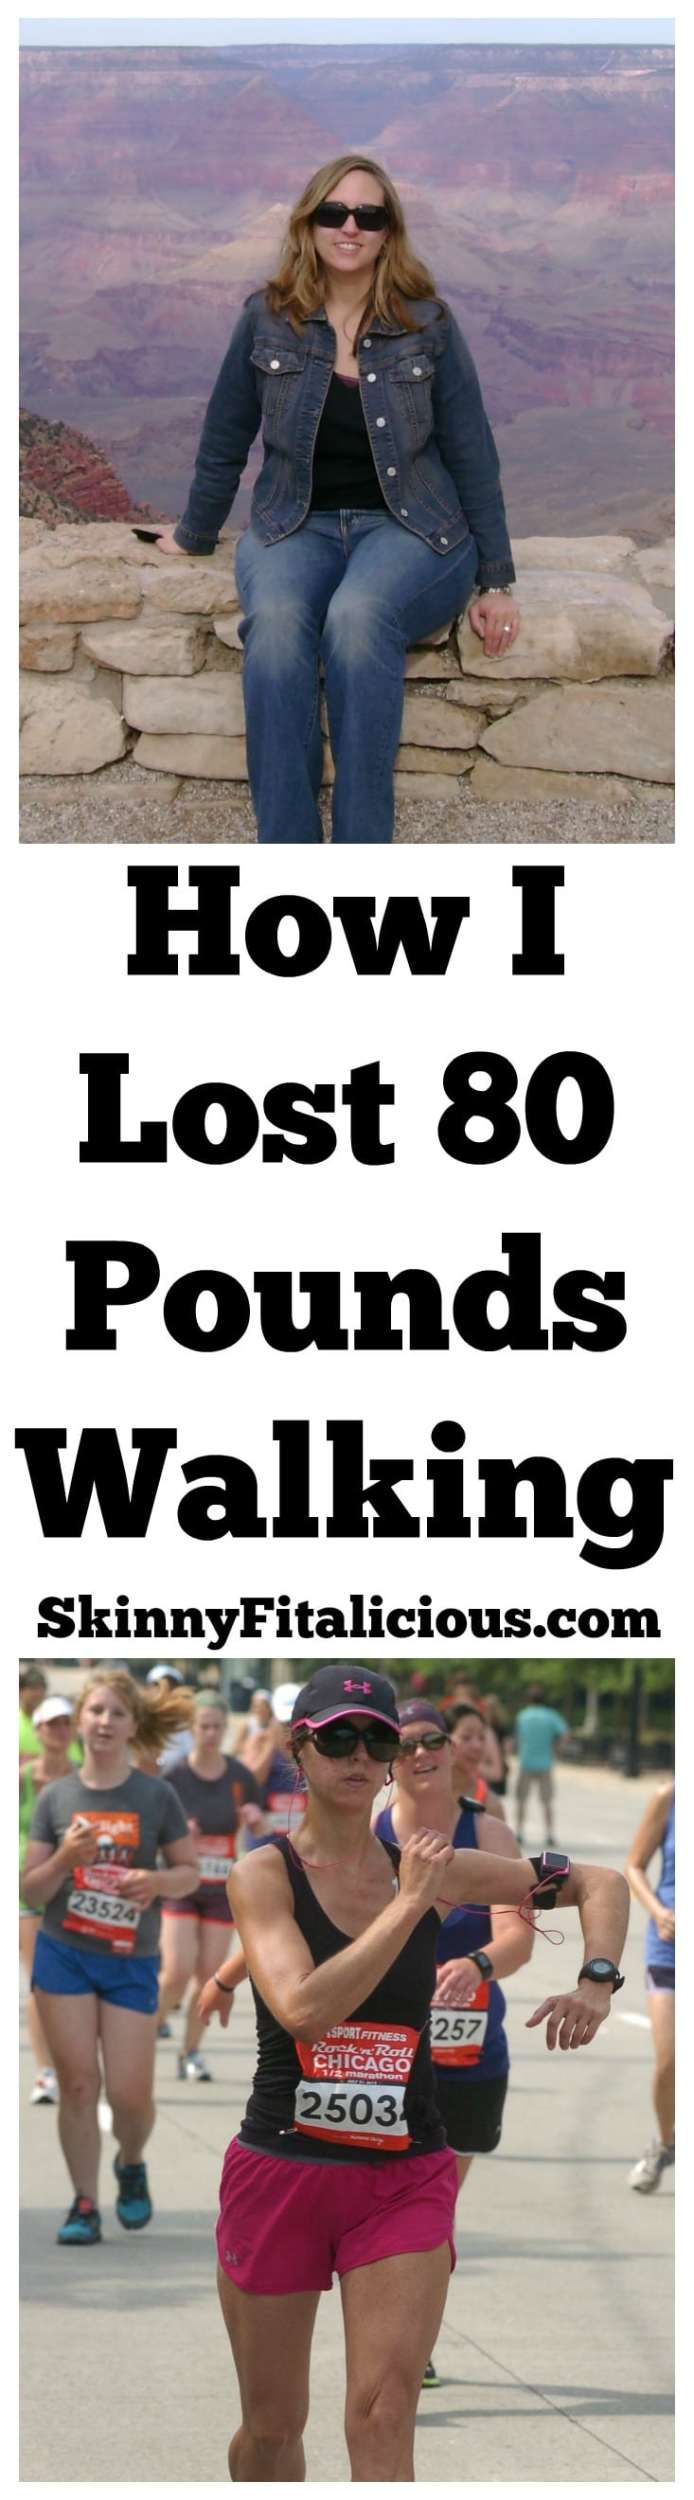 One day I started walking and that one day changed my life. Over the course of a year, I lost weight walking daily. Here's How I Lost 80 Pounds Walking.